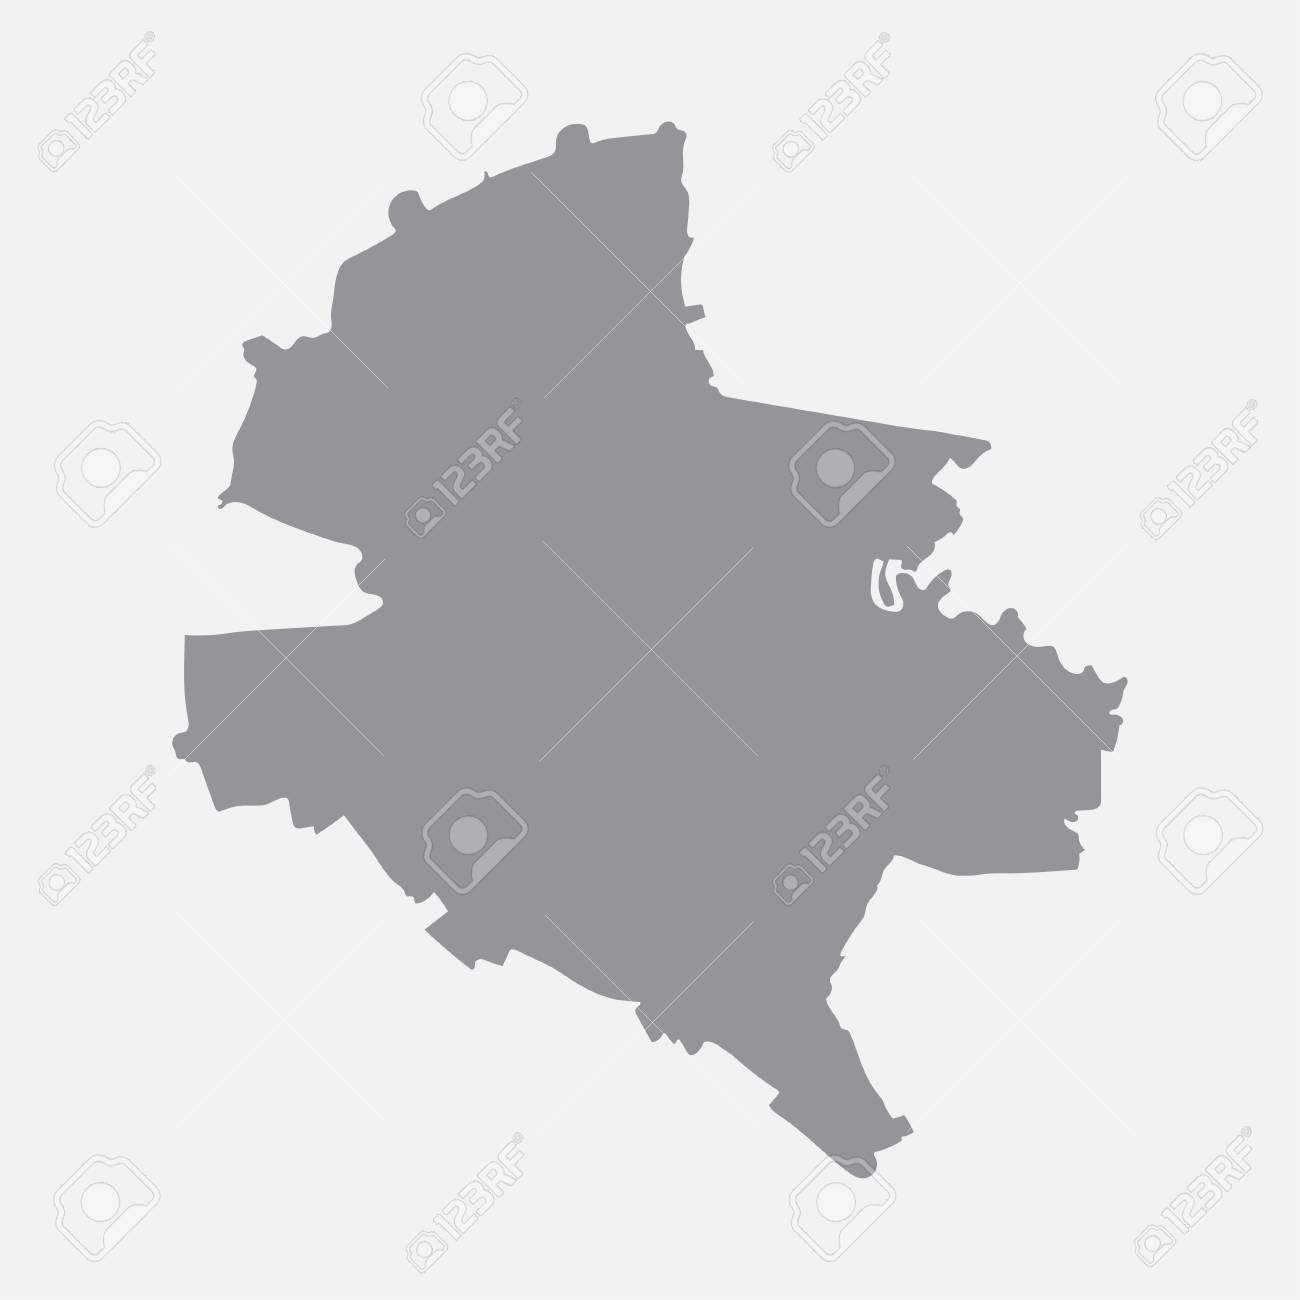 Bucharest city map in gray on a white background